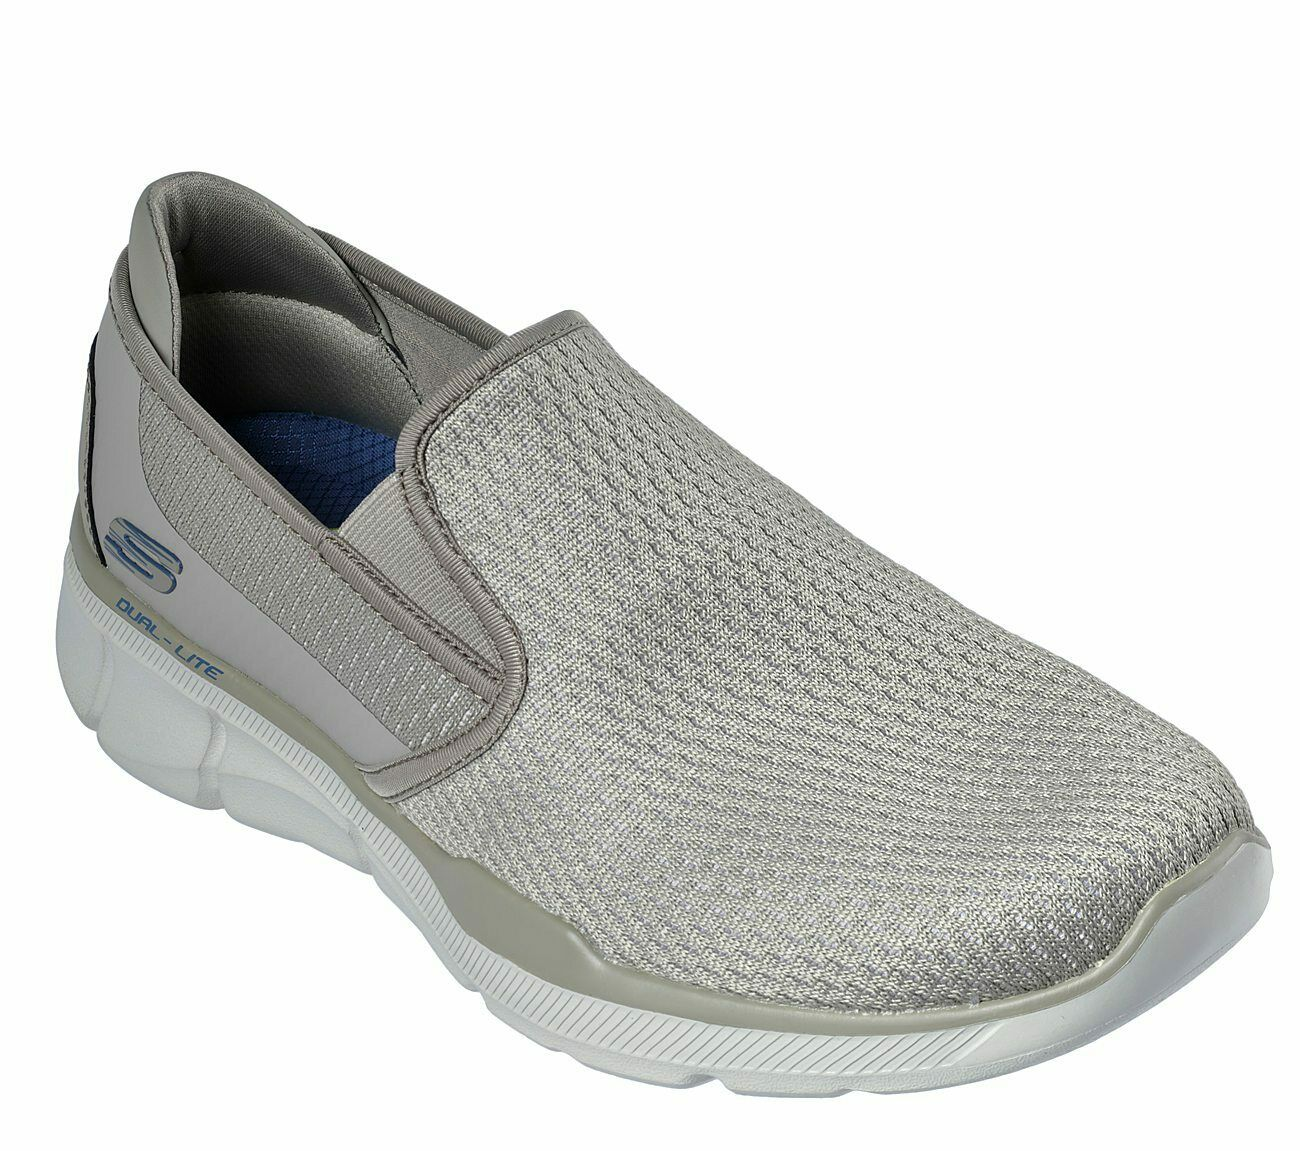 Mens Skechers Equalizer 3.0-Sumnin Slip On Casual Trainers Shoes Sizes 7 to 13